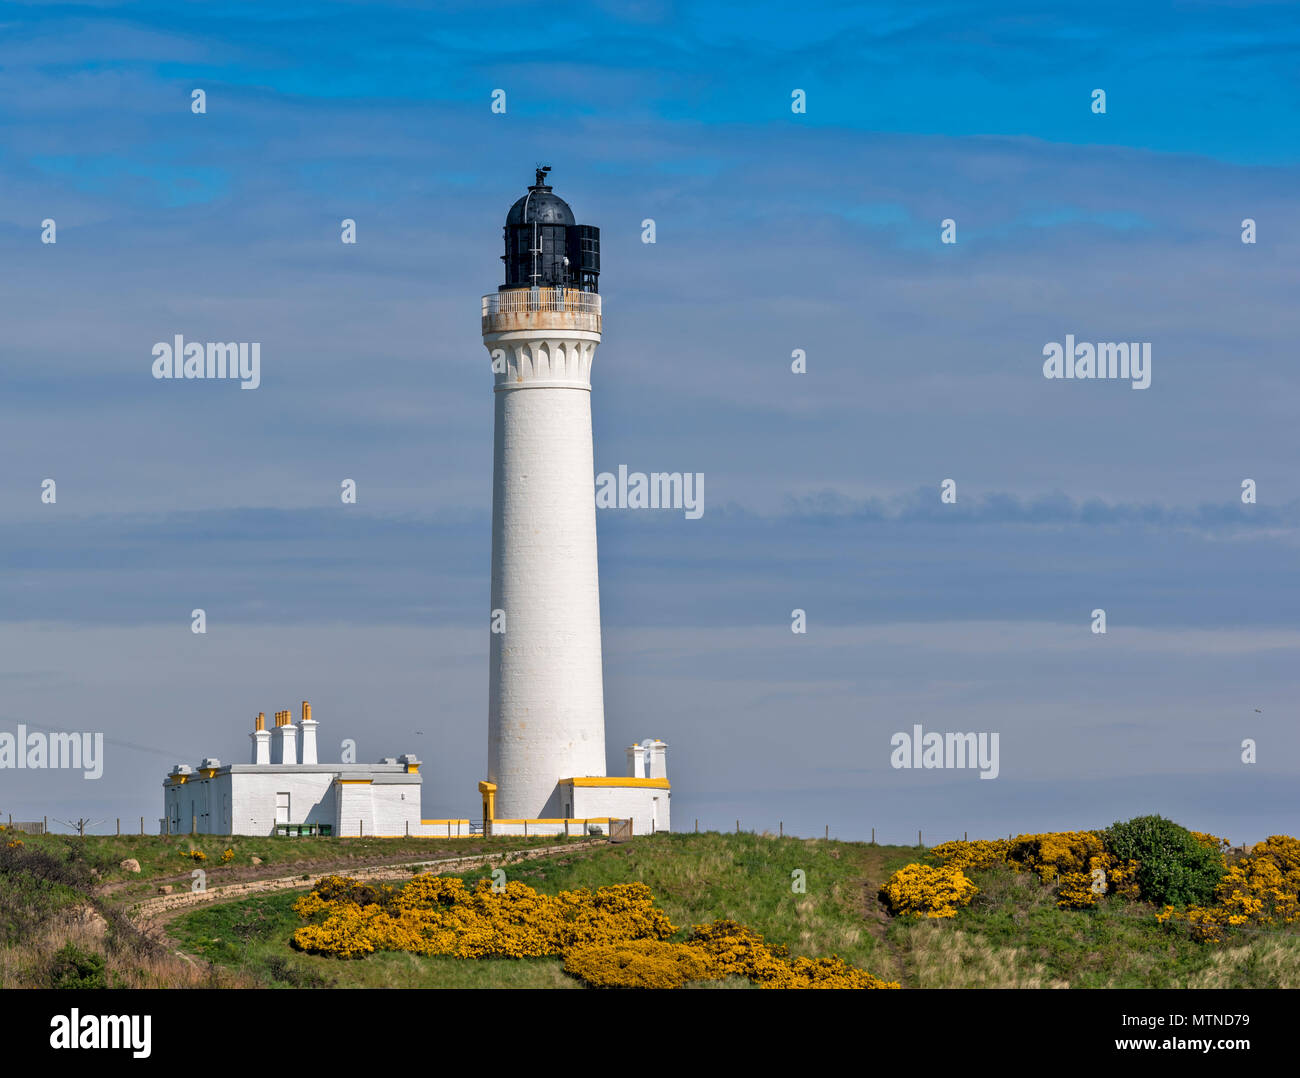 COVESEA LIGHTHOUSE LOSSIEMOUTH BEACH SCOTLAND WHITE COLUMN ON A HILL SURROUNDED BY YELLOW GORSE FLOWERS IN EARLY SPRING - Stock Image